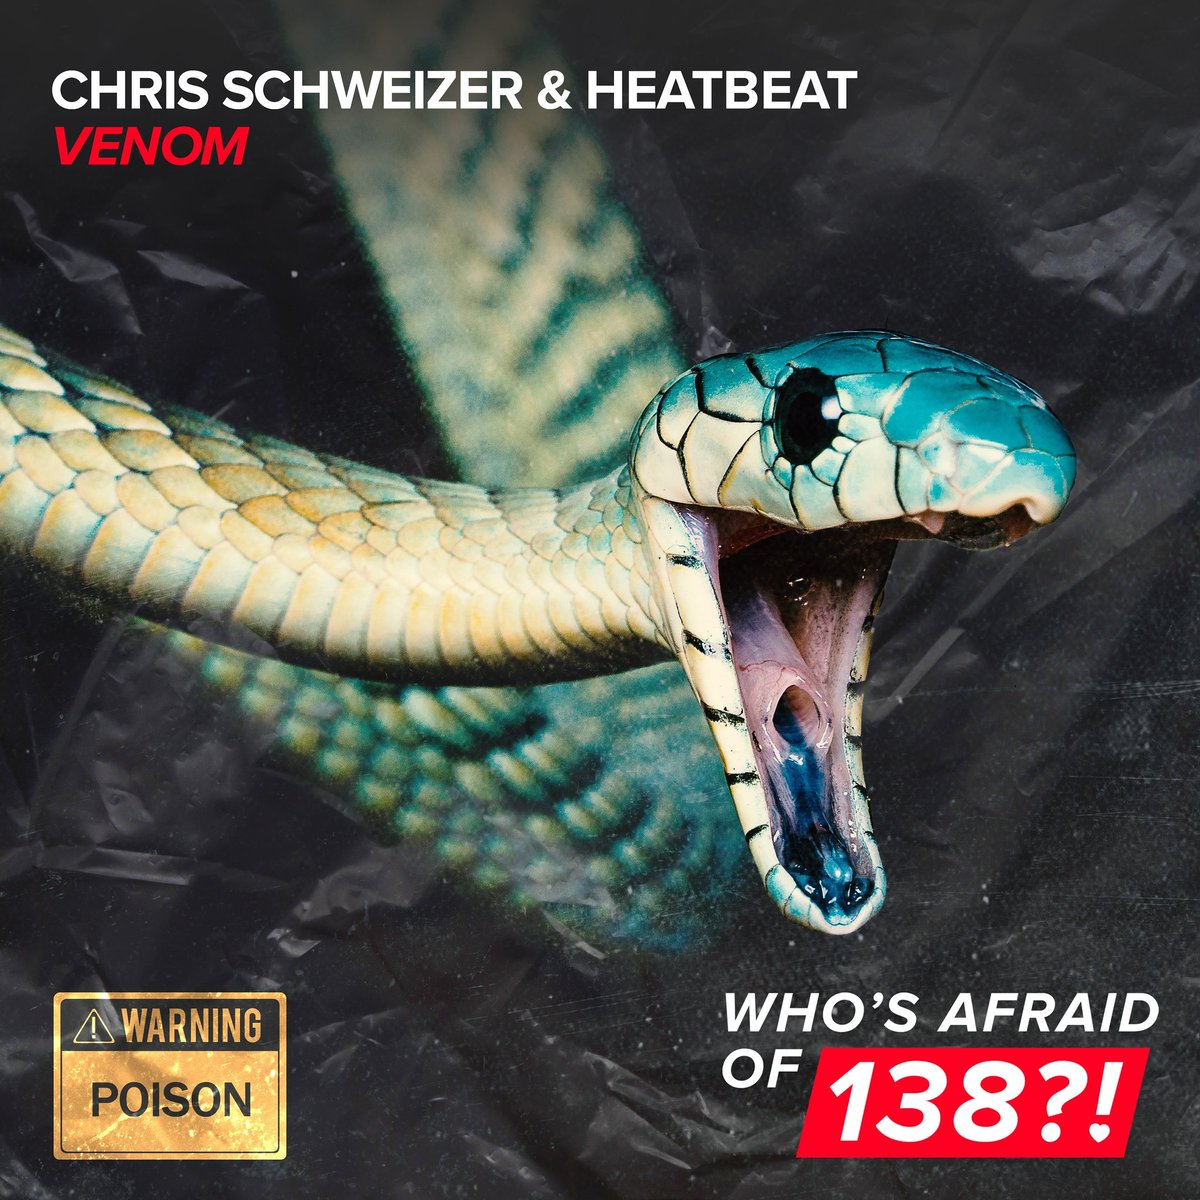 """Chris Schweizer & Heatbeat - Venom"" IS OUT NOW! 🔥 wao138223.lnk.to/Venom https://t.co/RJhpqxoOFQ"